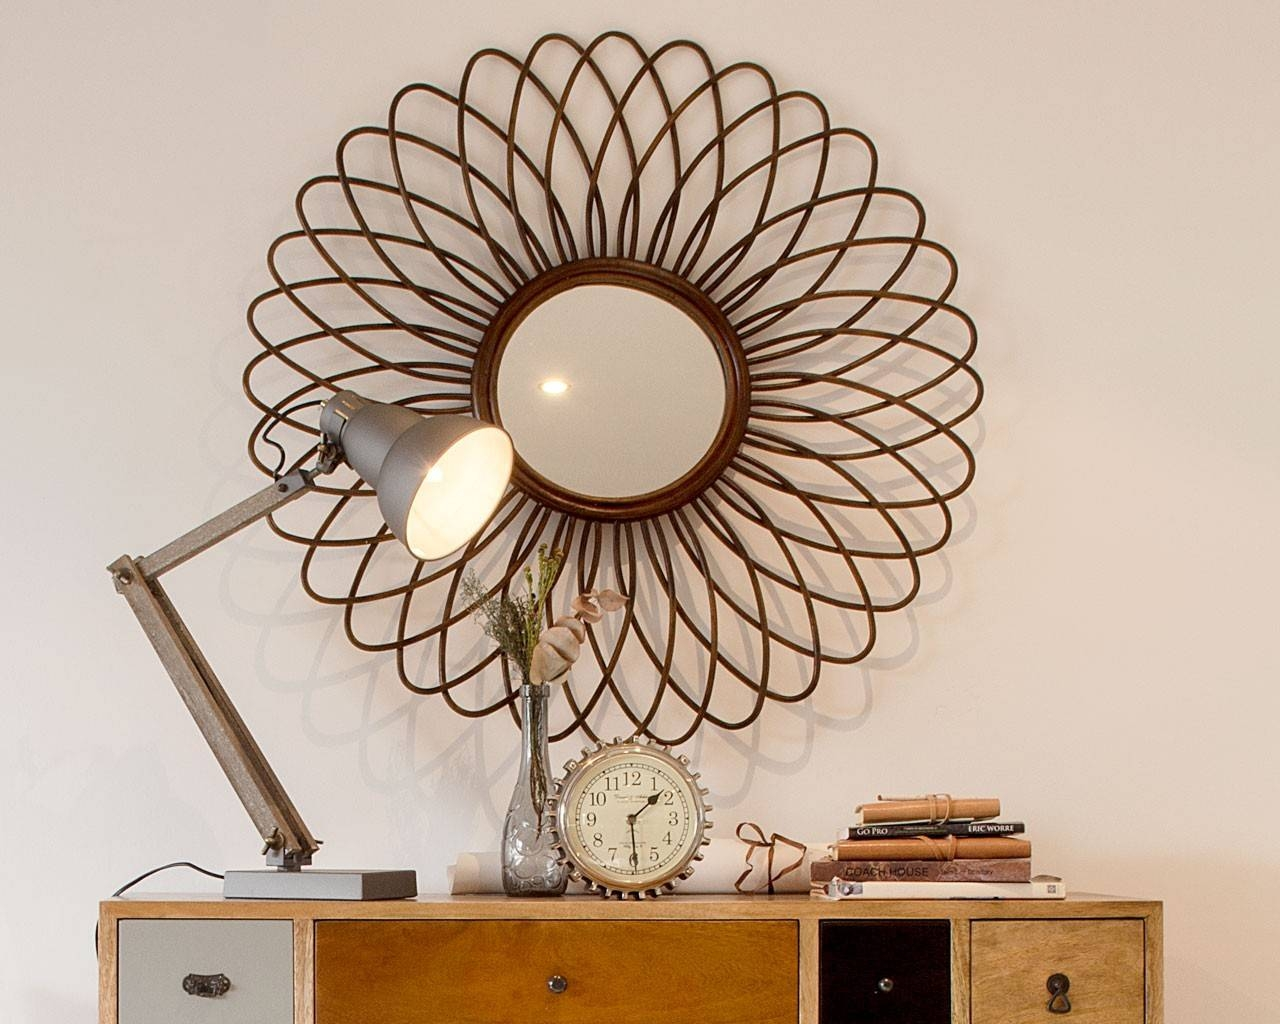 Rattan Ornate Round Mirror - Handcrafted Feature Mirrors for Ornate Round Mirrors (Image 22 of 25)